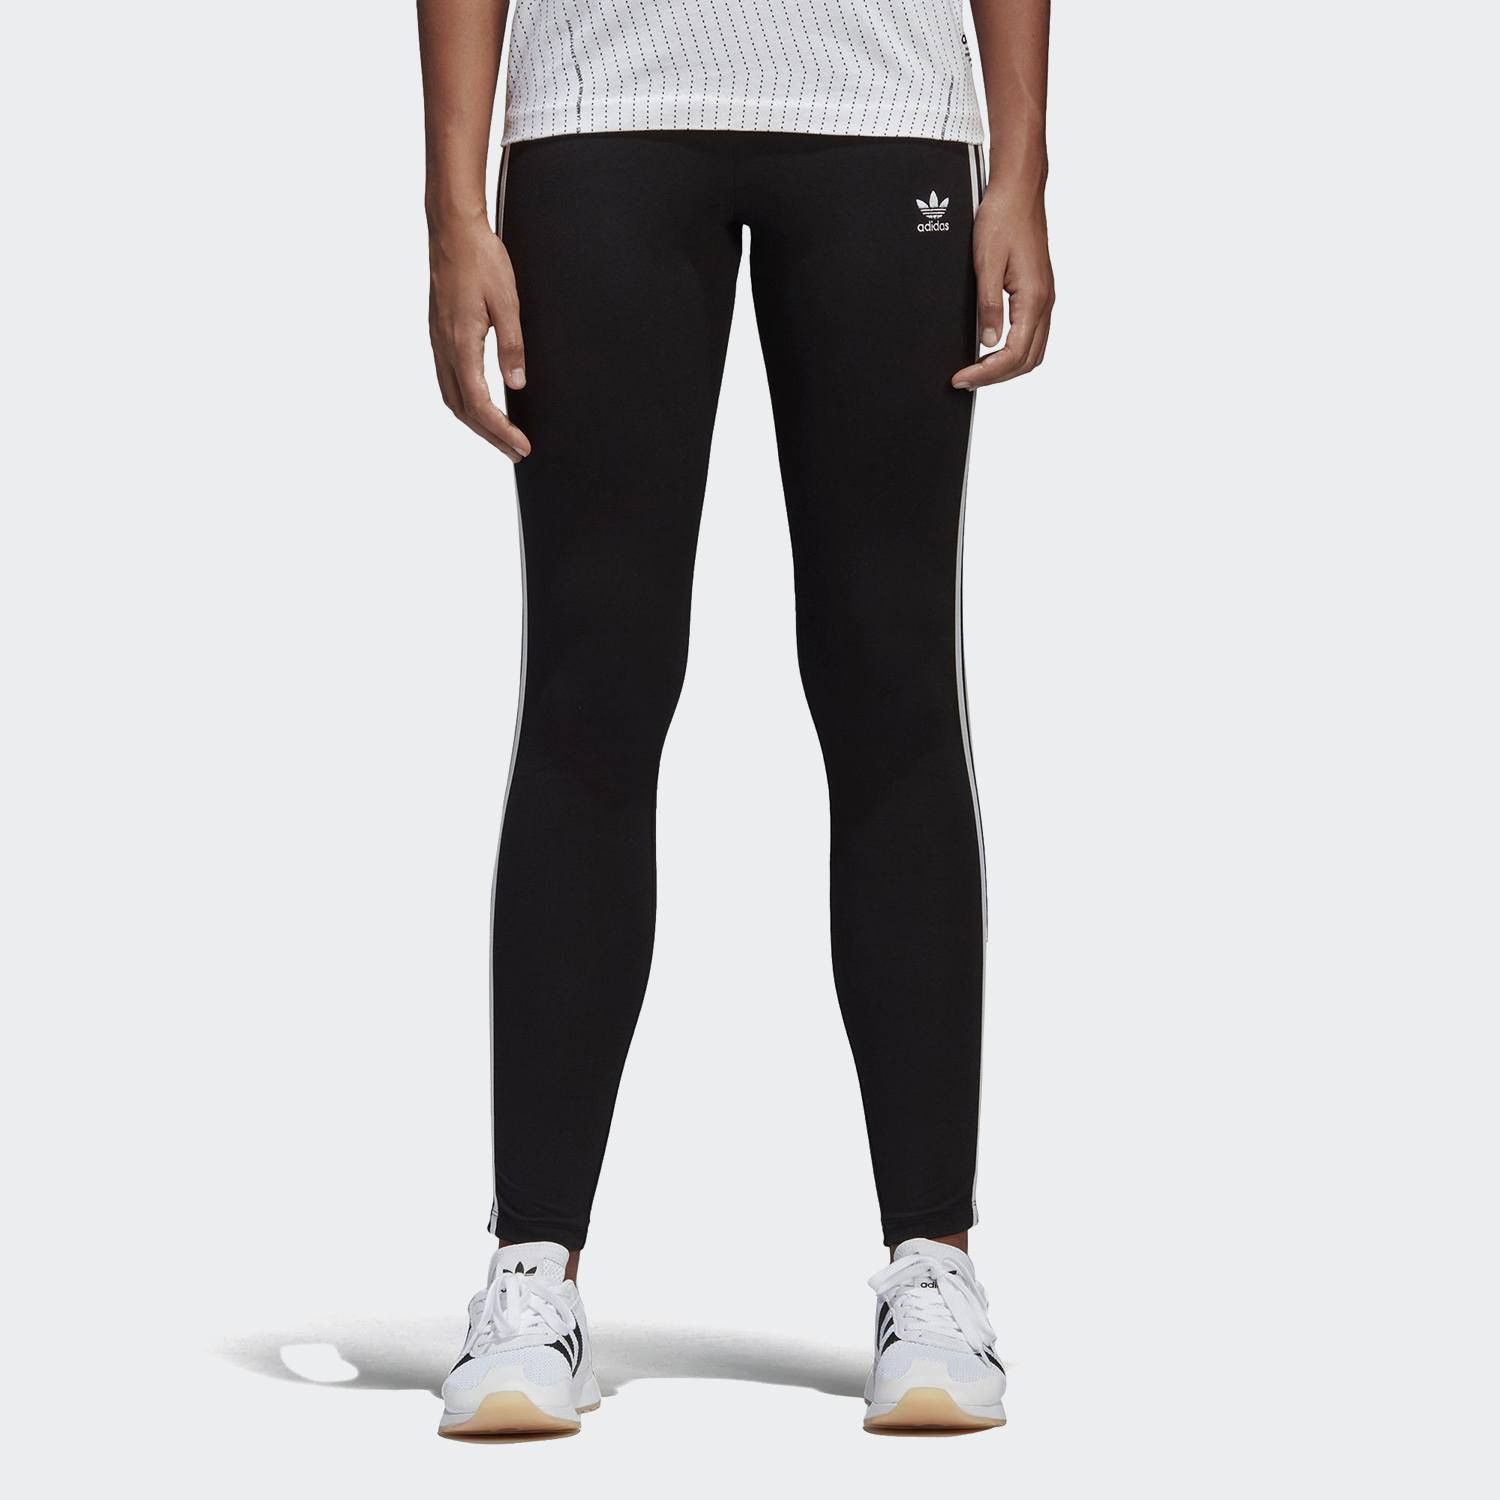 adidas Originals 3-Stripes Leggings - Γυναικείο Κολάν (9000001374_1469)